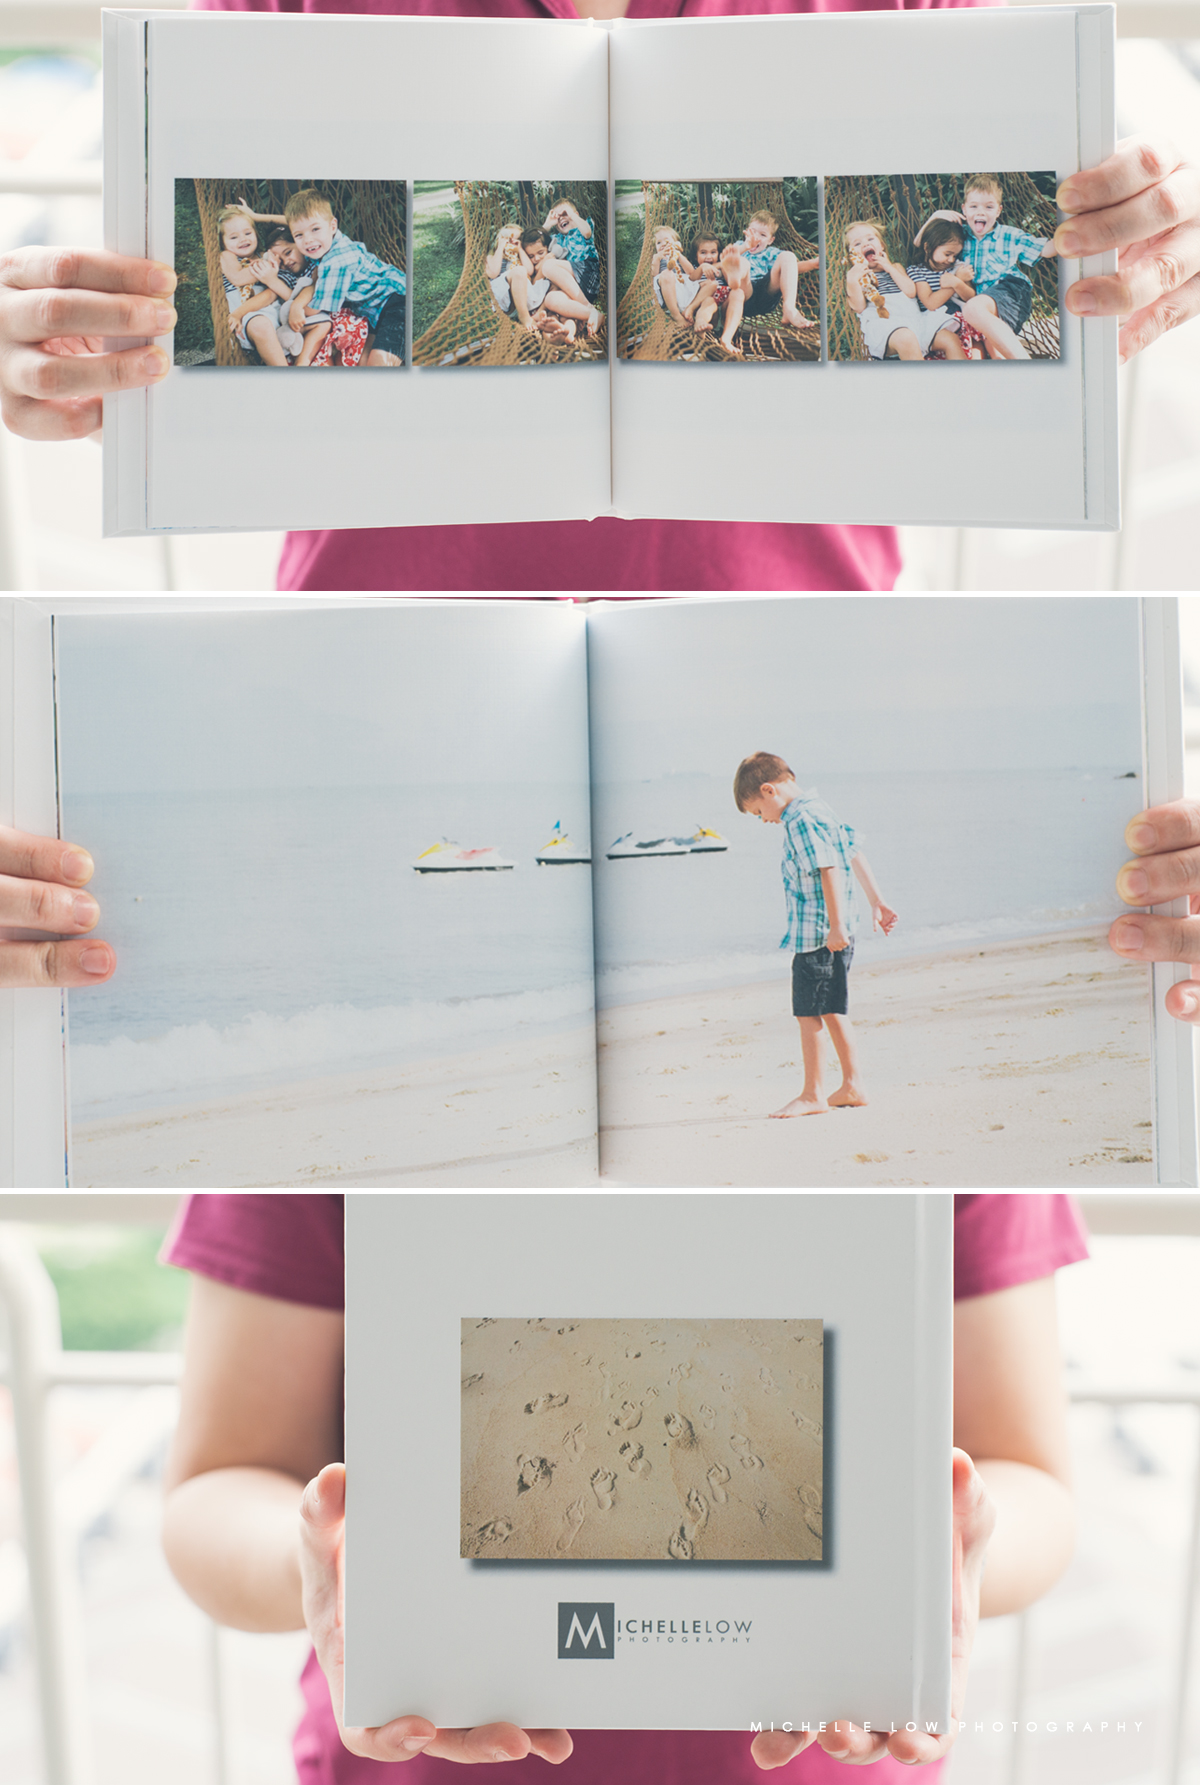 Photo book - Book of memories